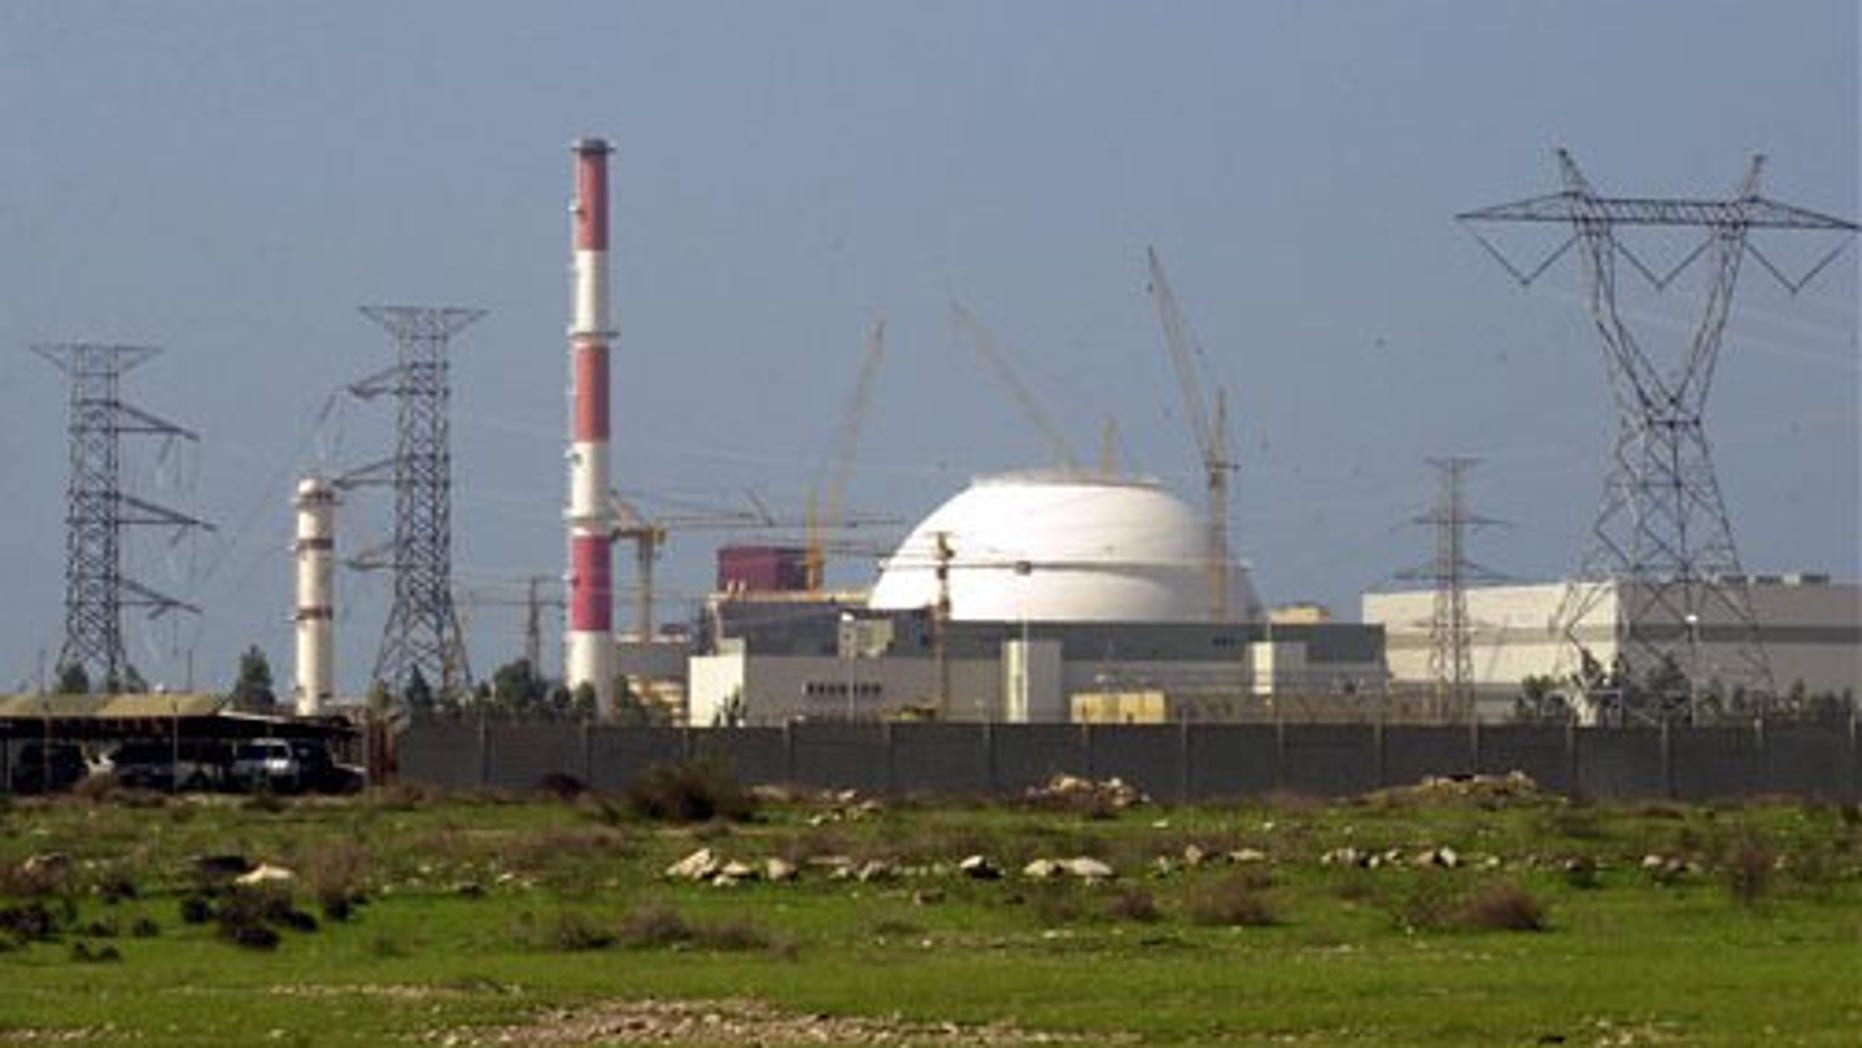 FILE - In this Feb. 27, 2005 file photo,  The reactor building of Iran's nuclear power plant is seen, at Bushehr, Iran, 750 miles south of the capital Tehran.